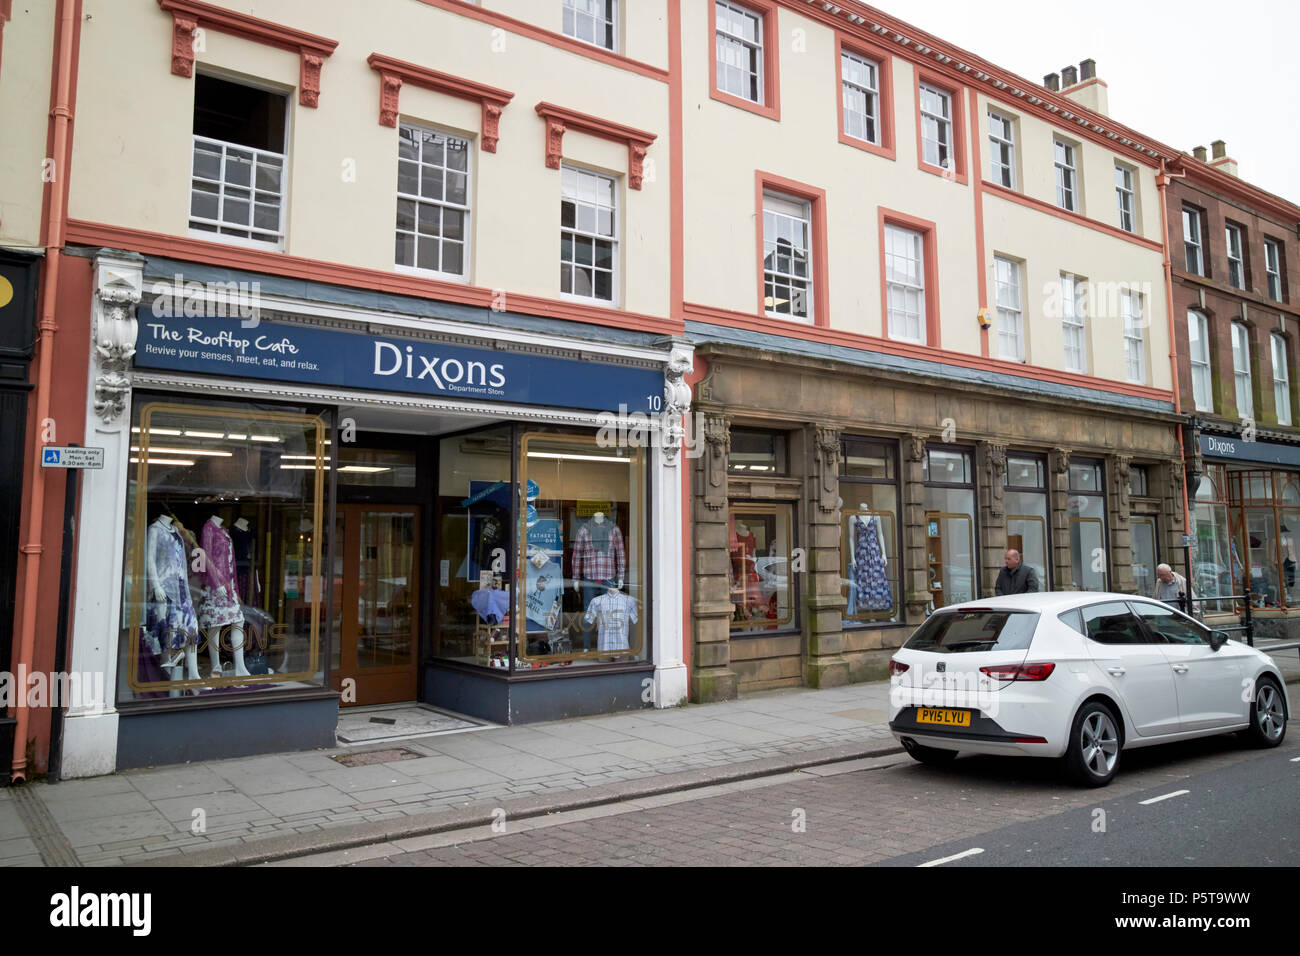 Dixons department store Whitehaven Cumbria England UK - Stock Image